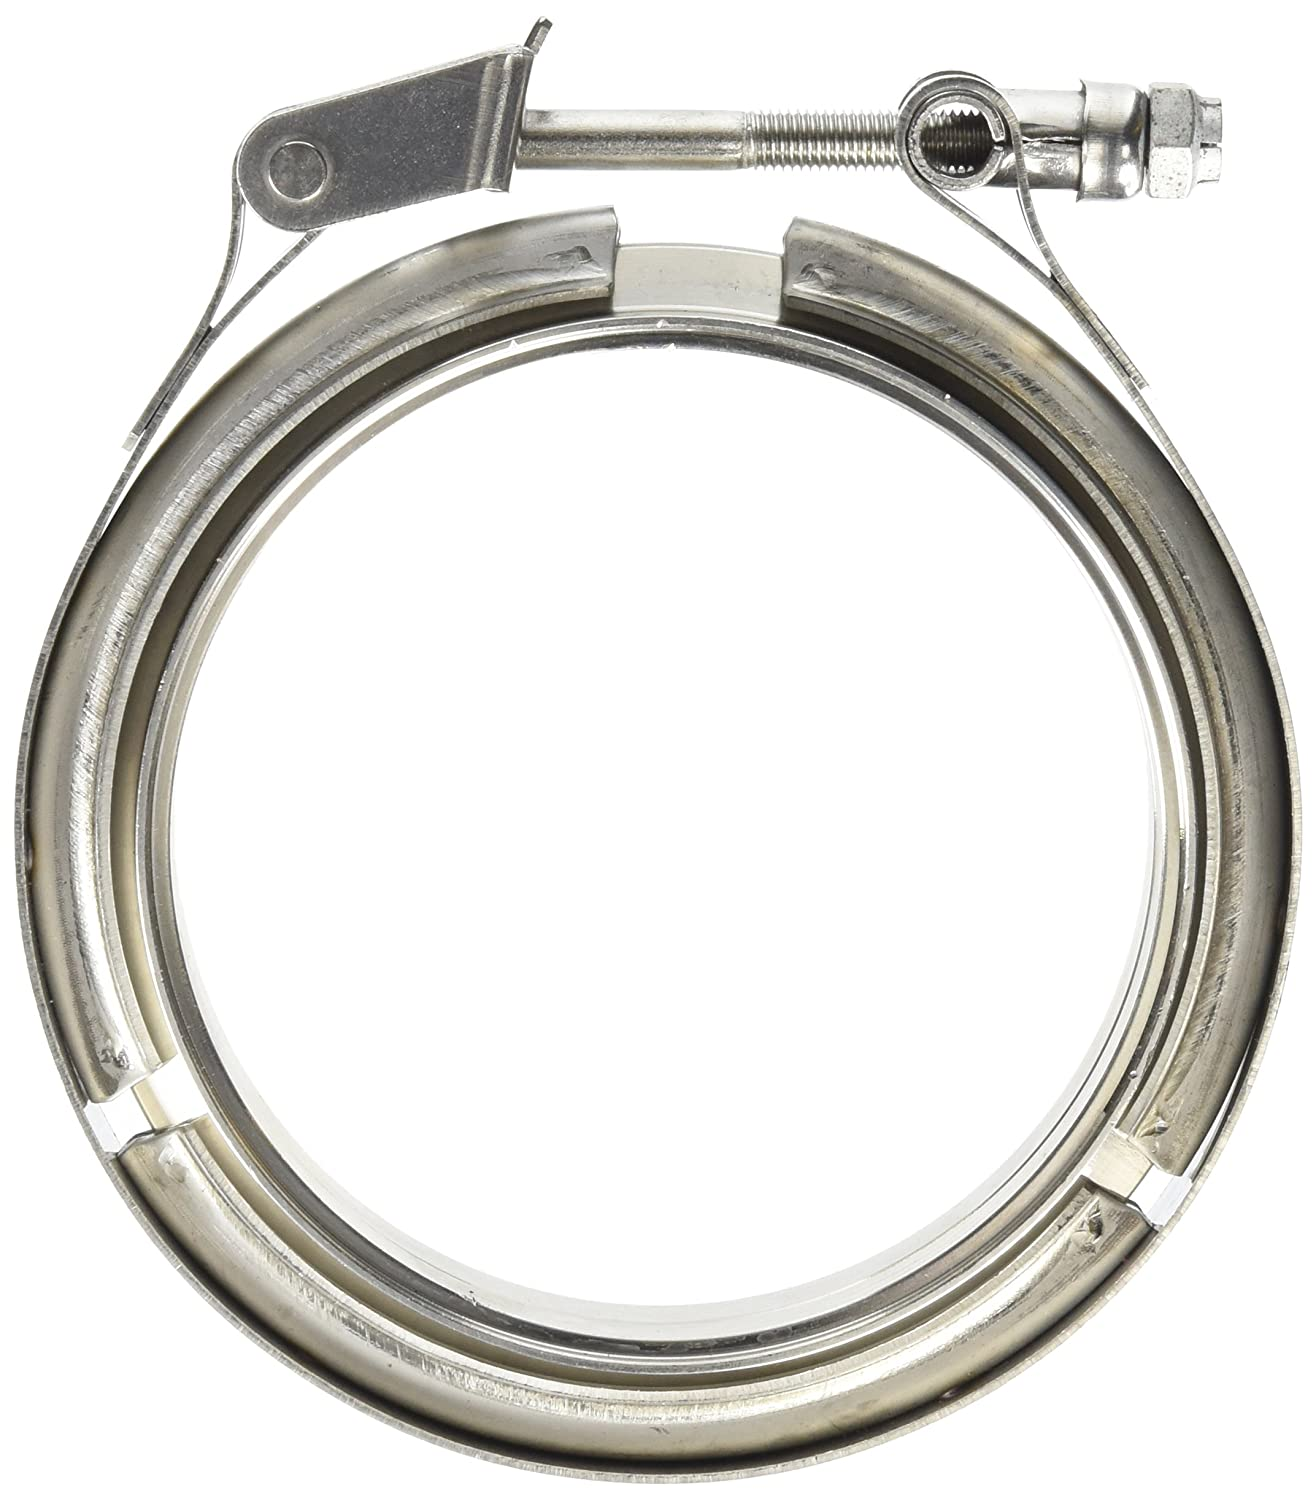 Vibrant 1493 4' Stainless Steel V-Band Flange Assembly KEYU1 VIB1493